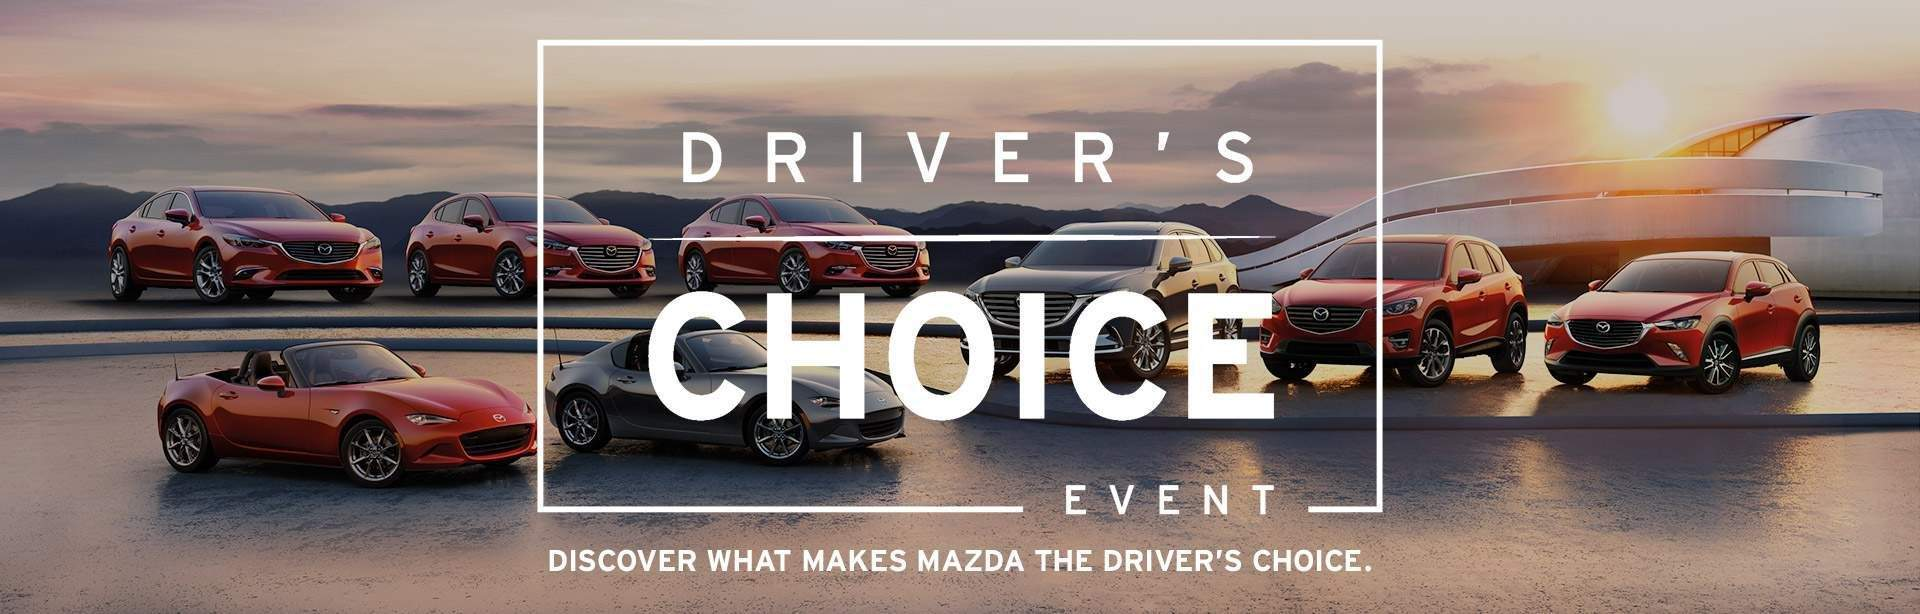 Drivers Choice Mazda